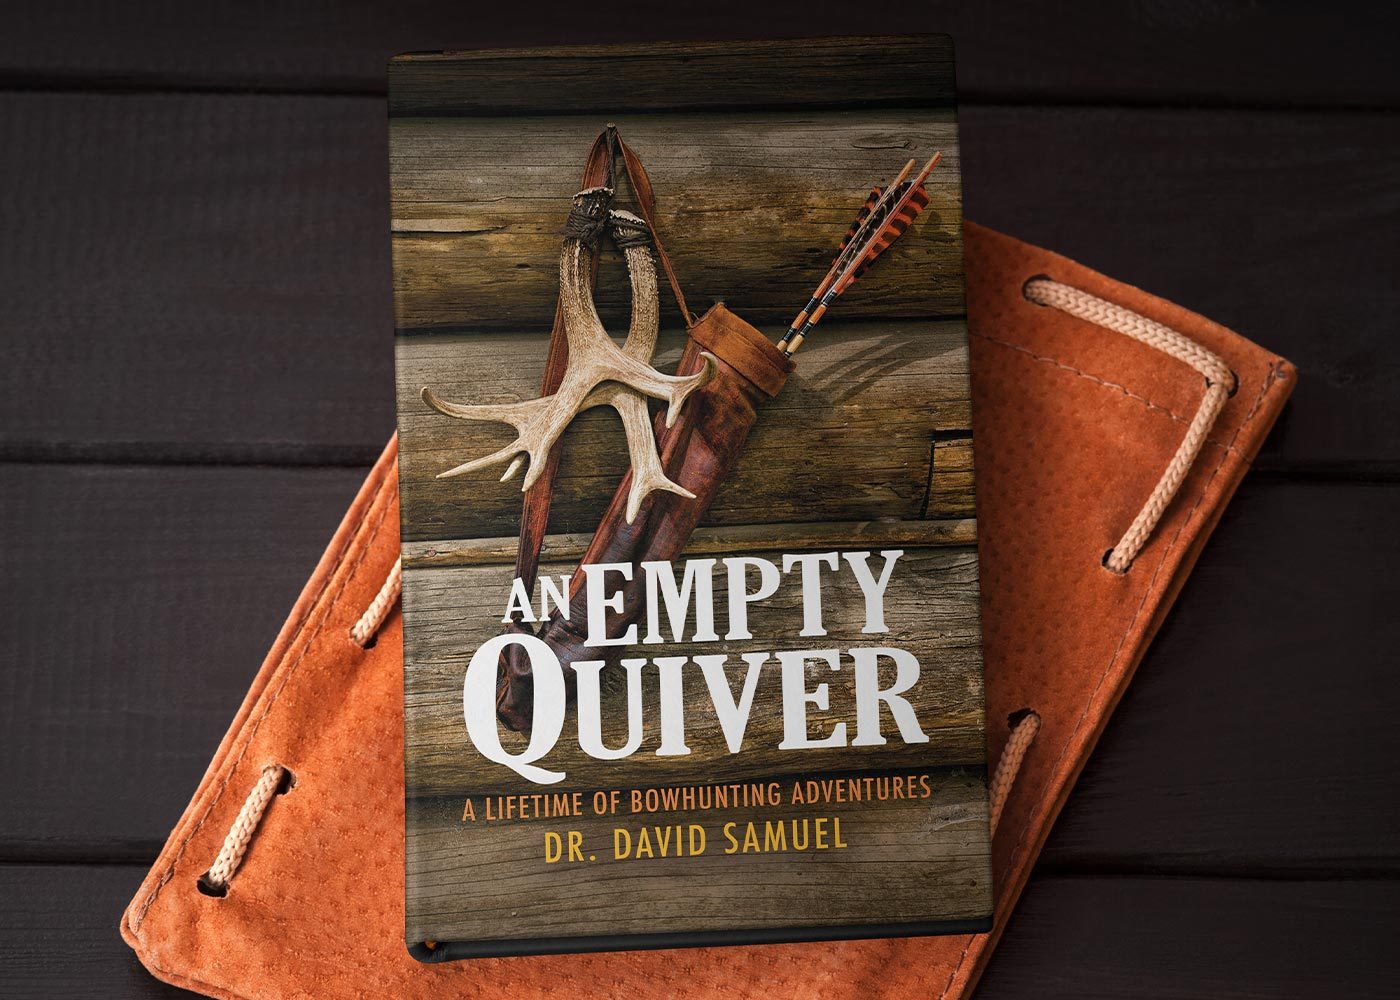 An Empty Quiver by Dr. David Samuel